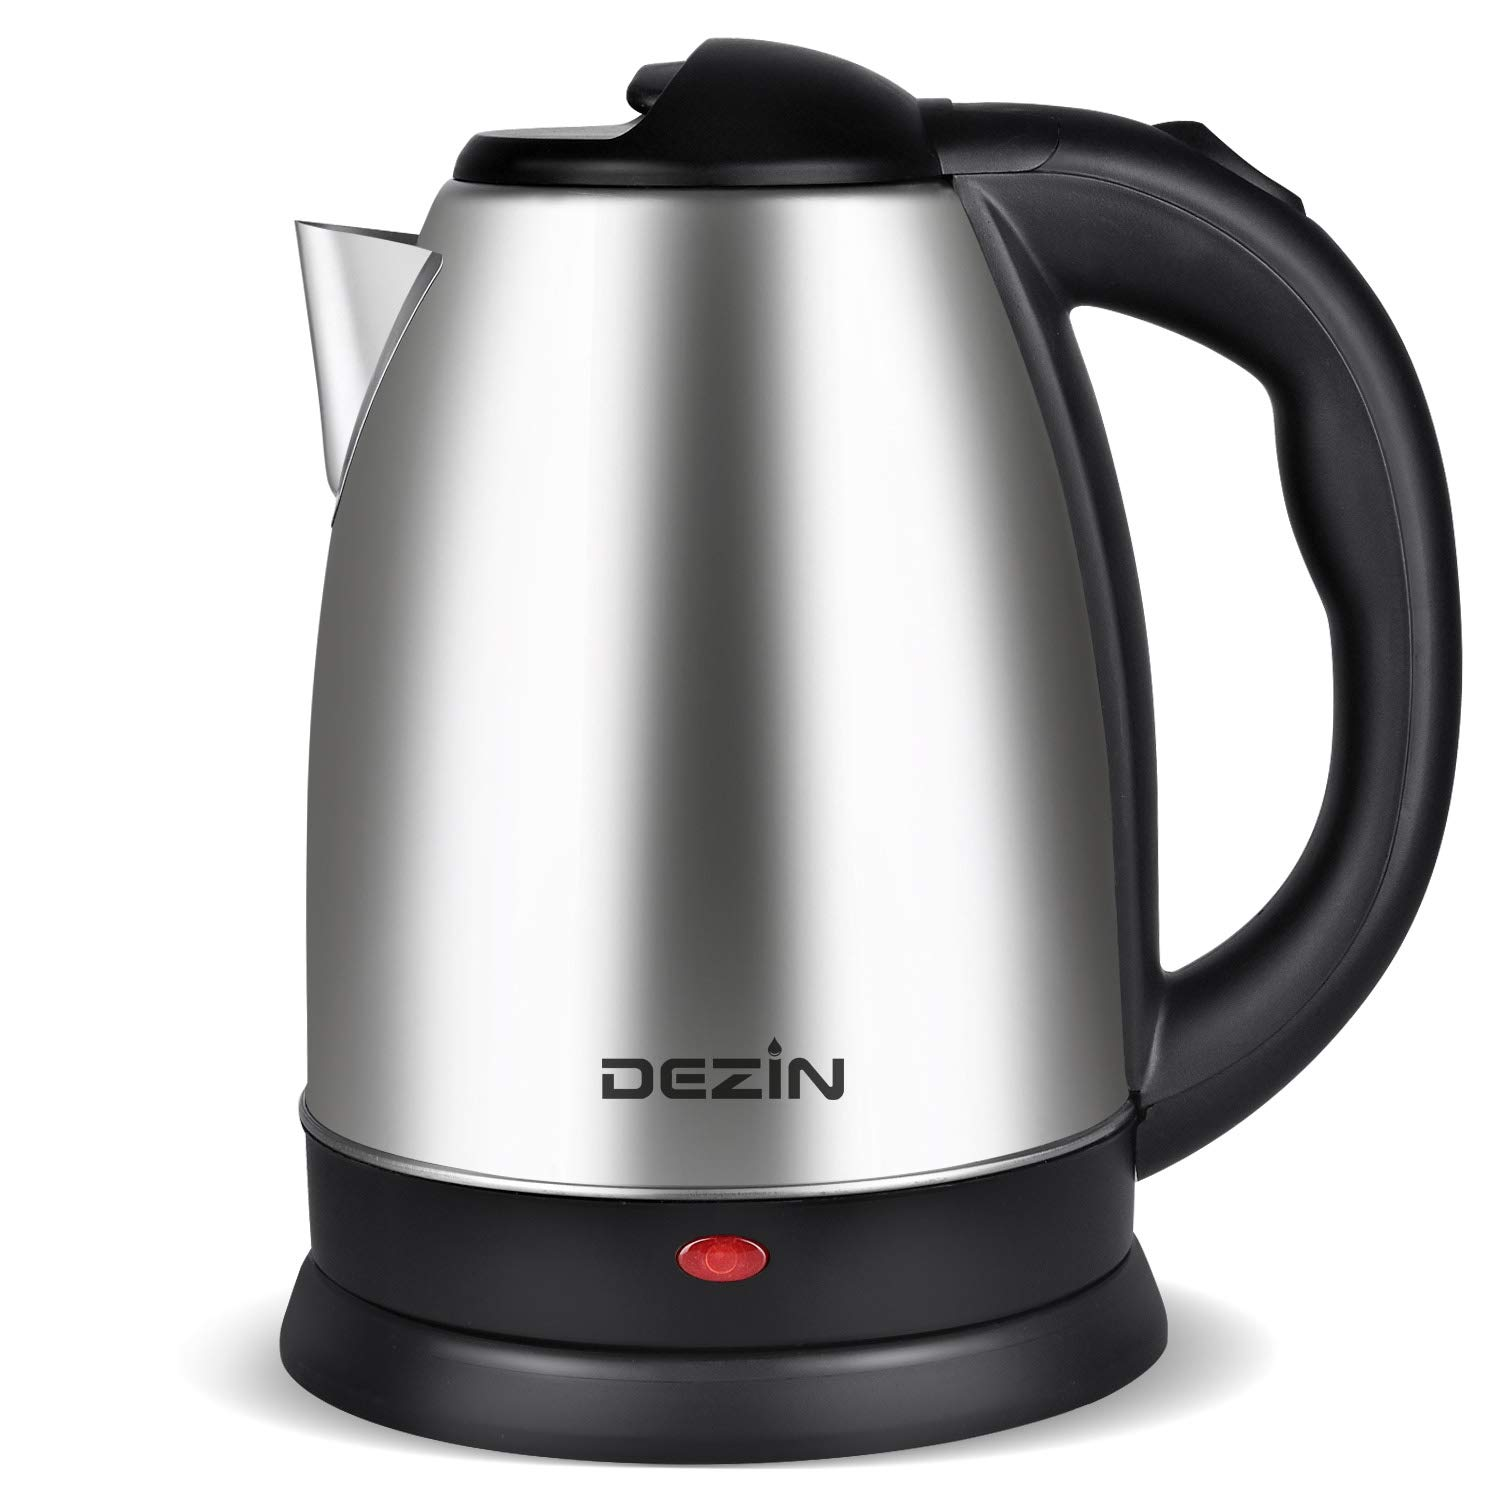 Dezin Electric Kettle Water Heater, 2L Stainless Steel Cordless Tea Kettle, Fast Boil, Auto Shut Off and Boil Dry Protection Tech – Base on SIDE Concept (Simple, Inexpensive, Dependable and Effective) by DEZIN (Image #1)